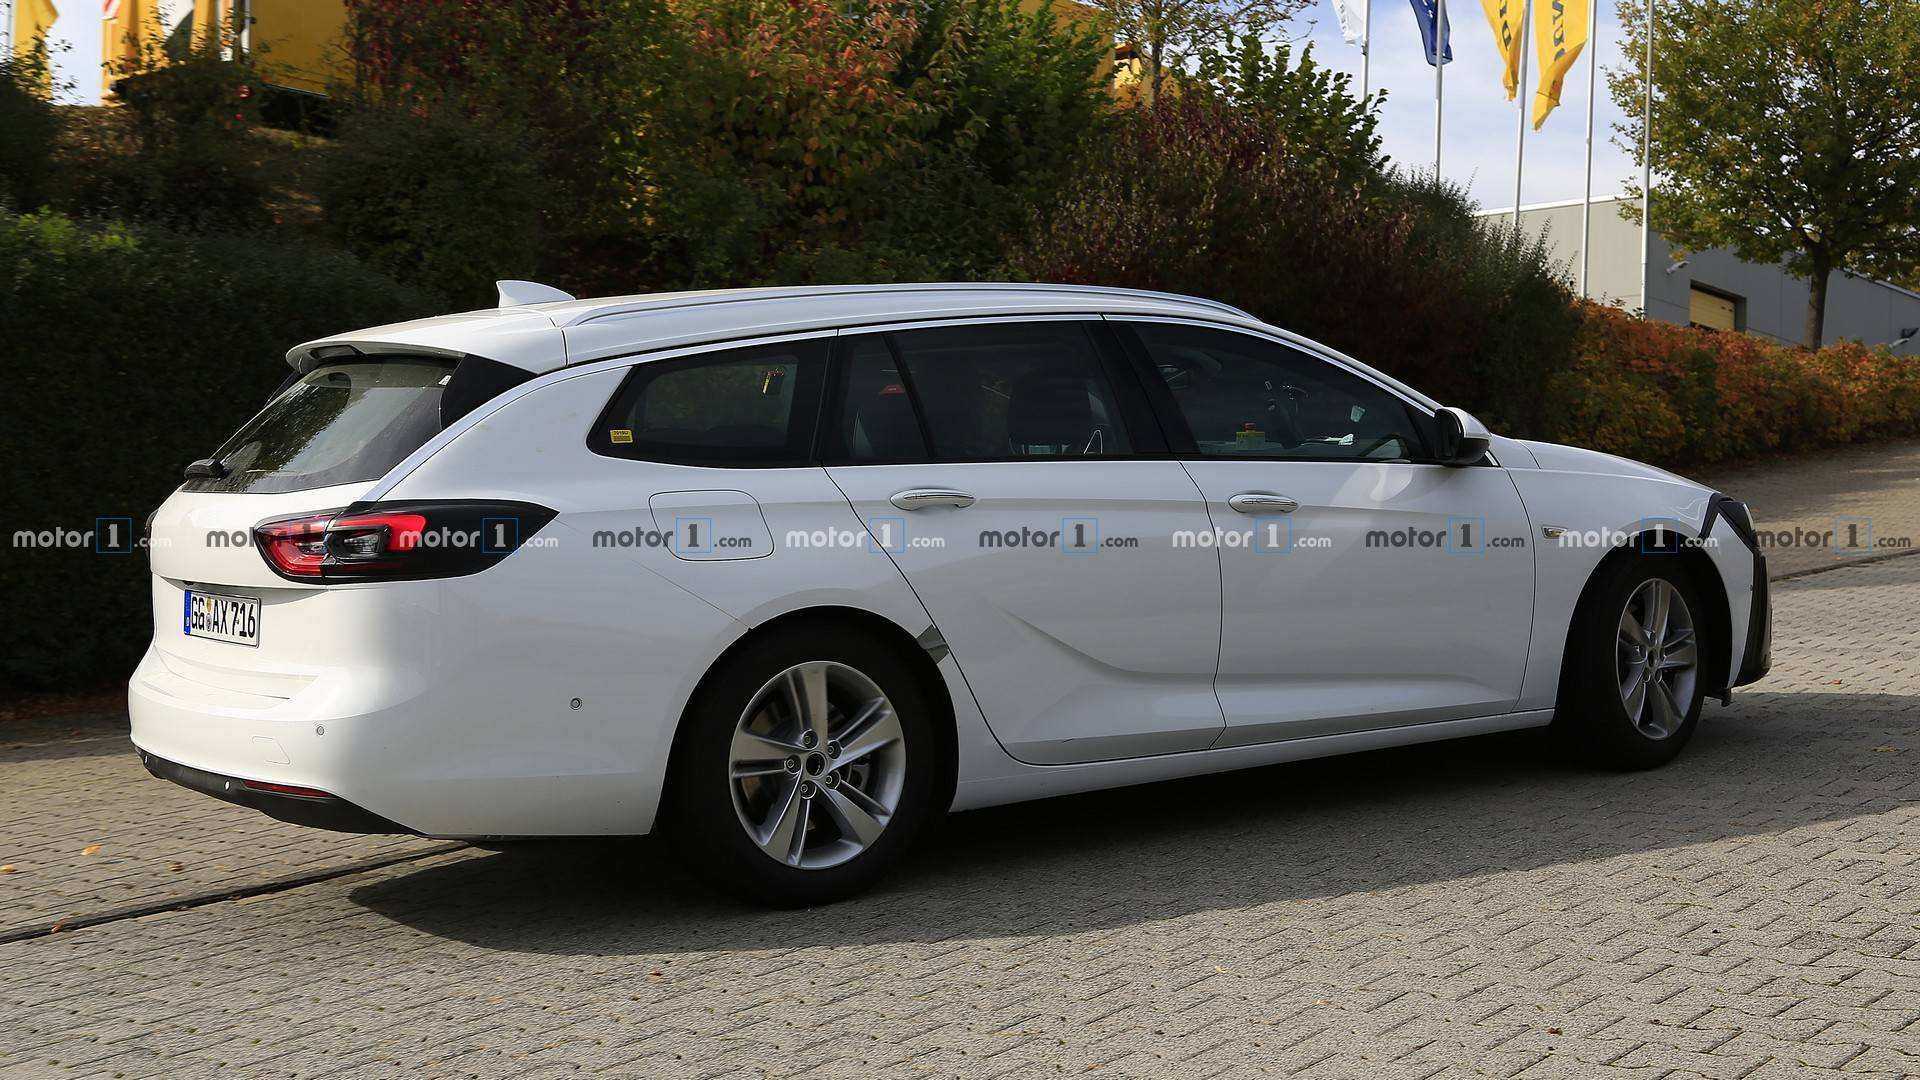 60 Concept of Opel Insignia Facelift 2020 Style by Opel Insignia Facelift 2020